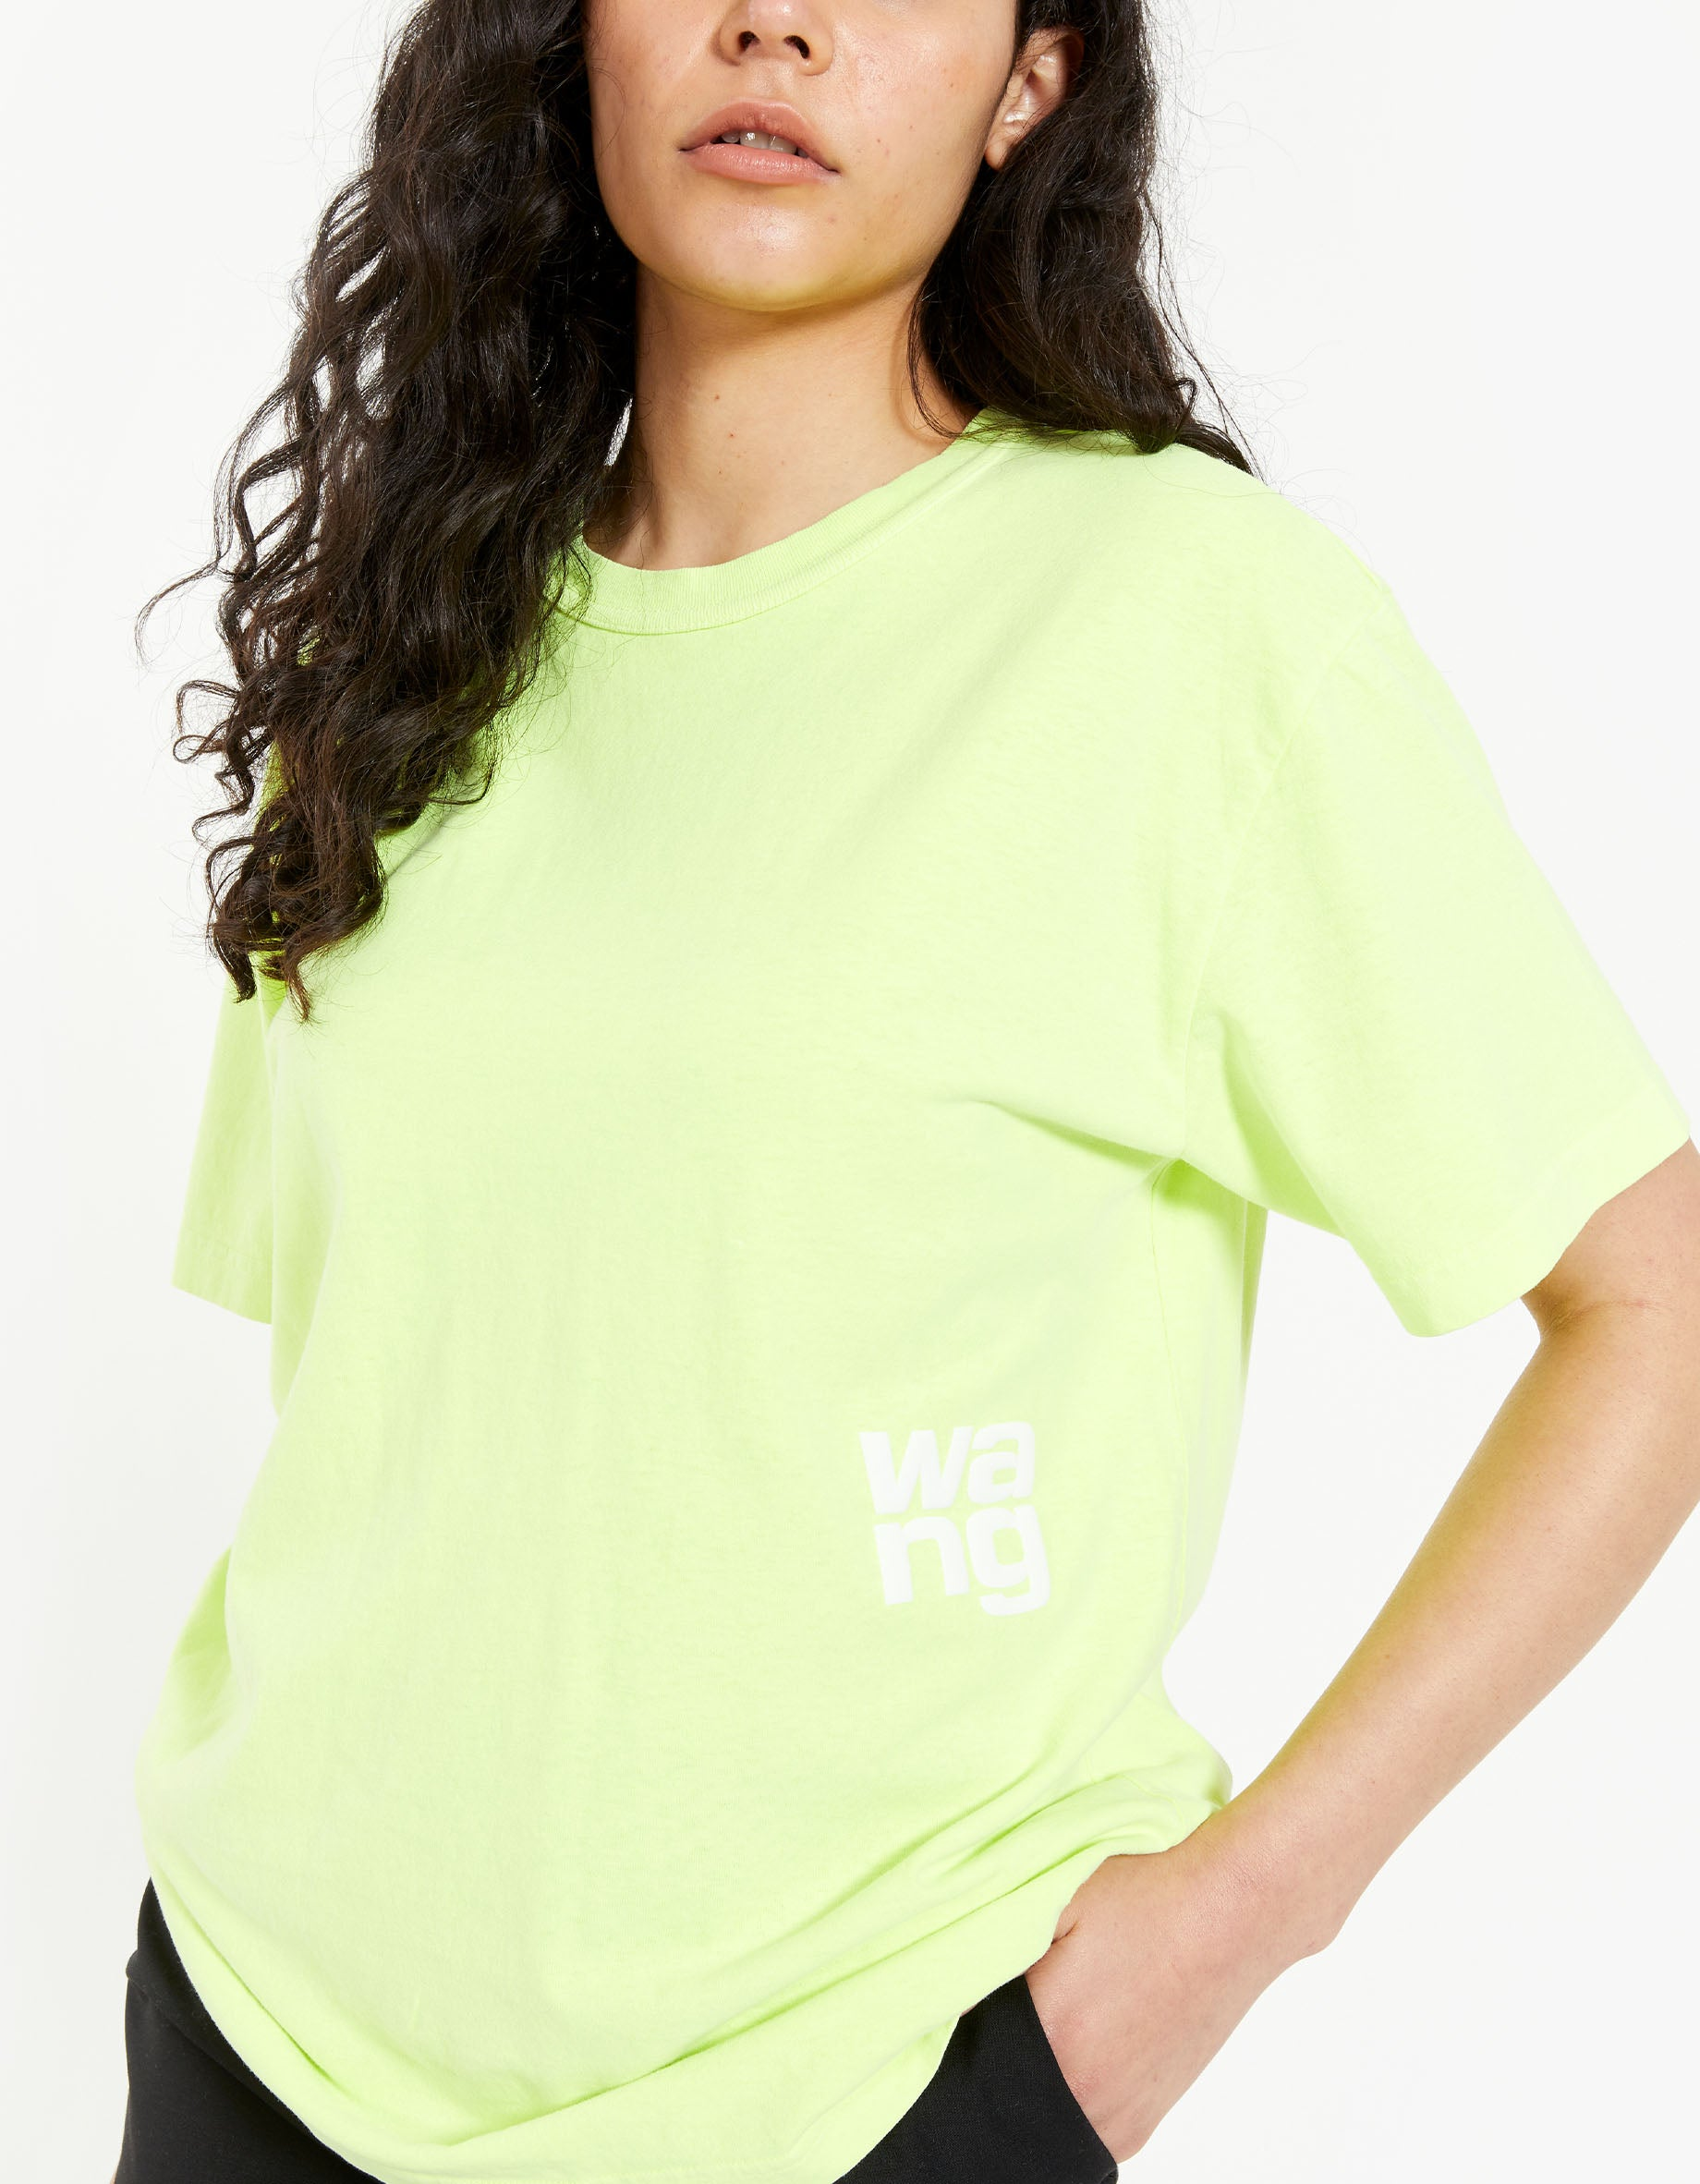 Structured Jersey SS Tee With Puff Paint Logo - Neon Celandine